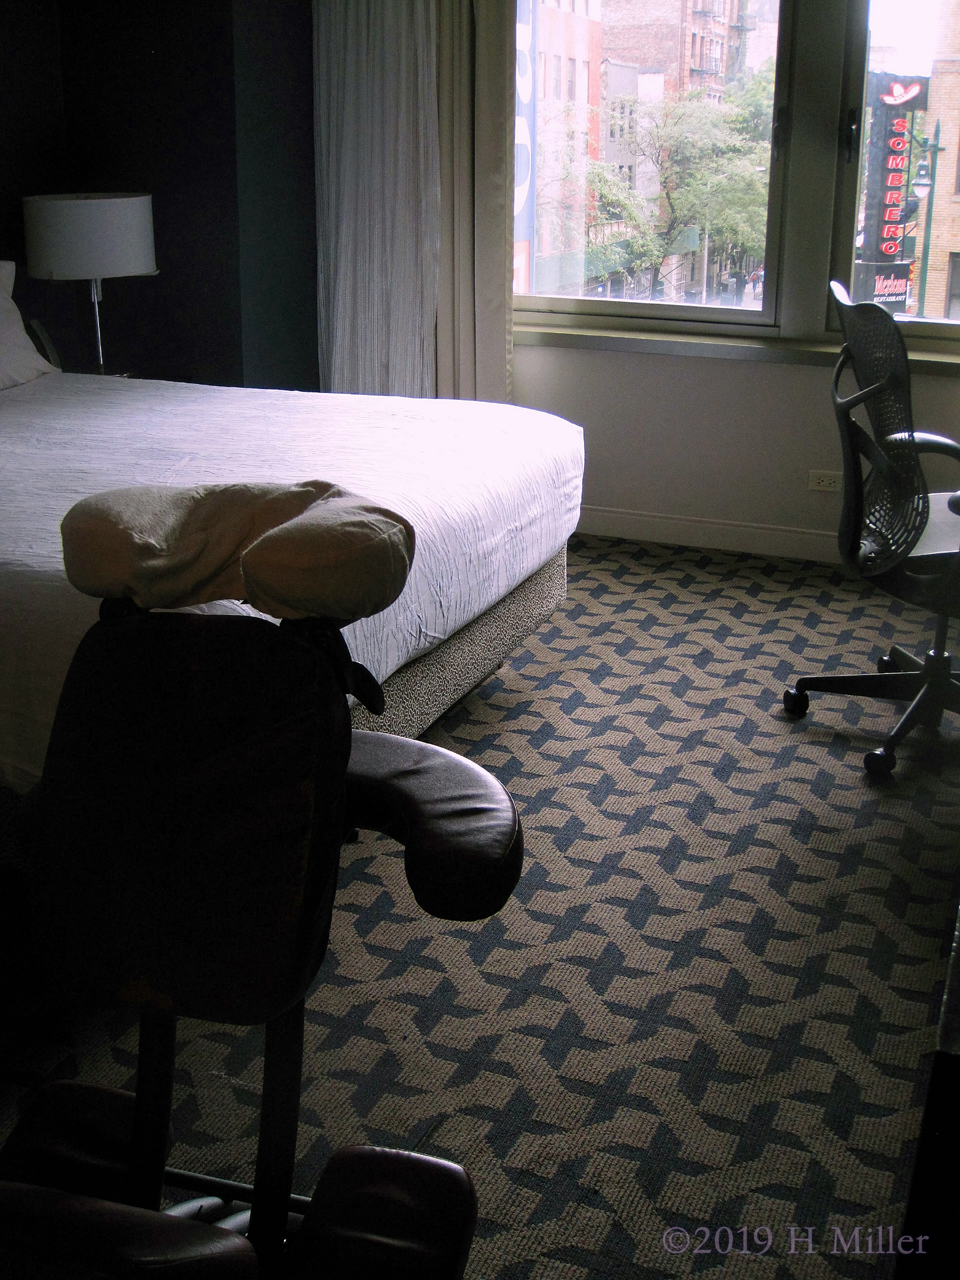 Chair Massage In The Hotel Room For Housekeeping Staff During International Housekeeping Week